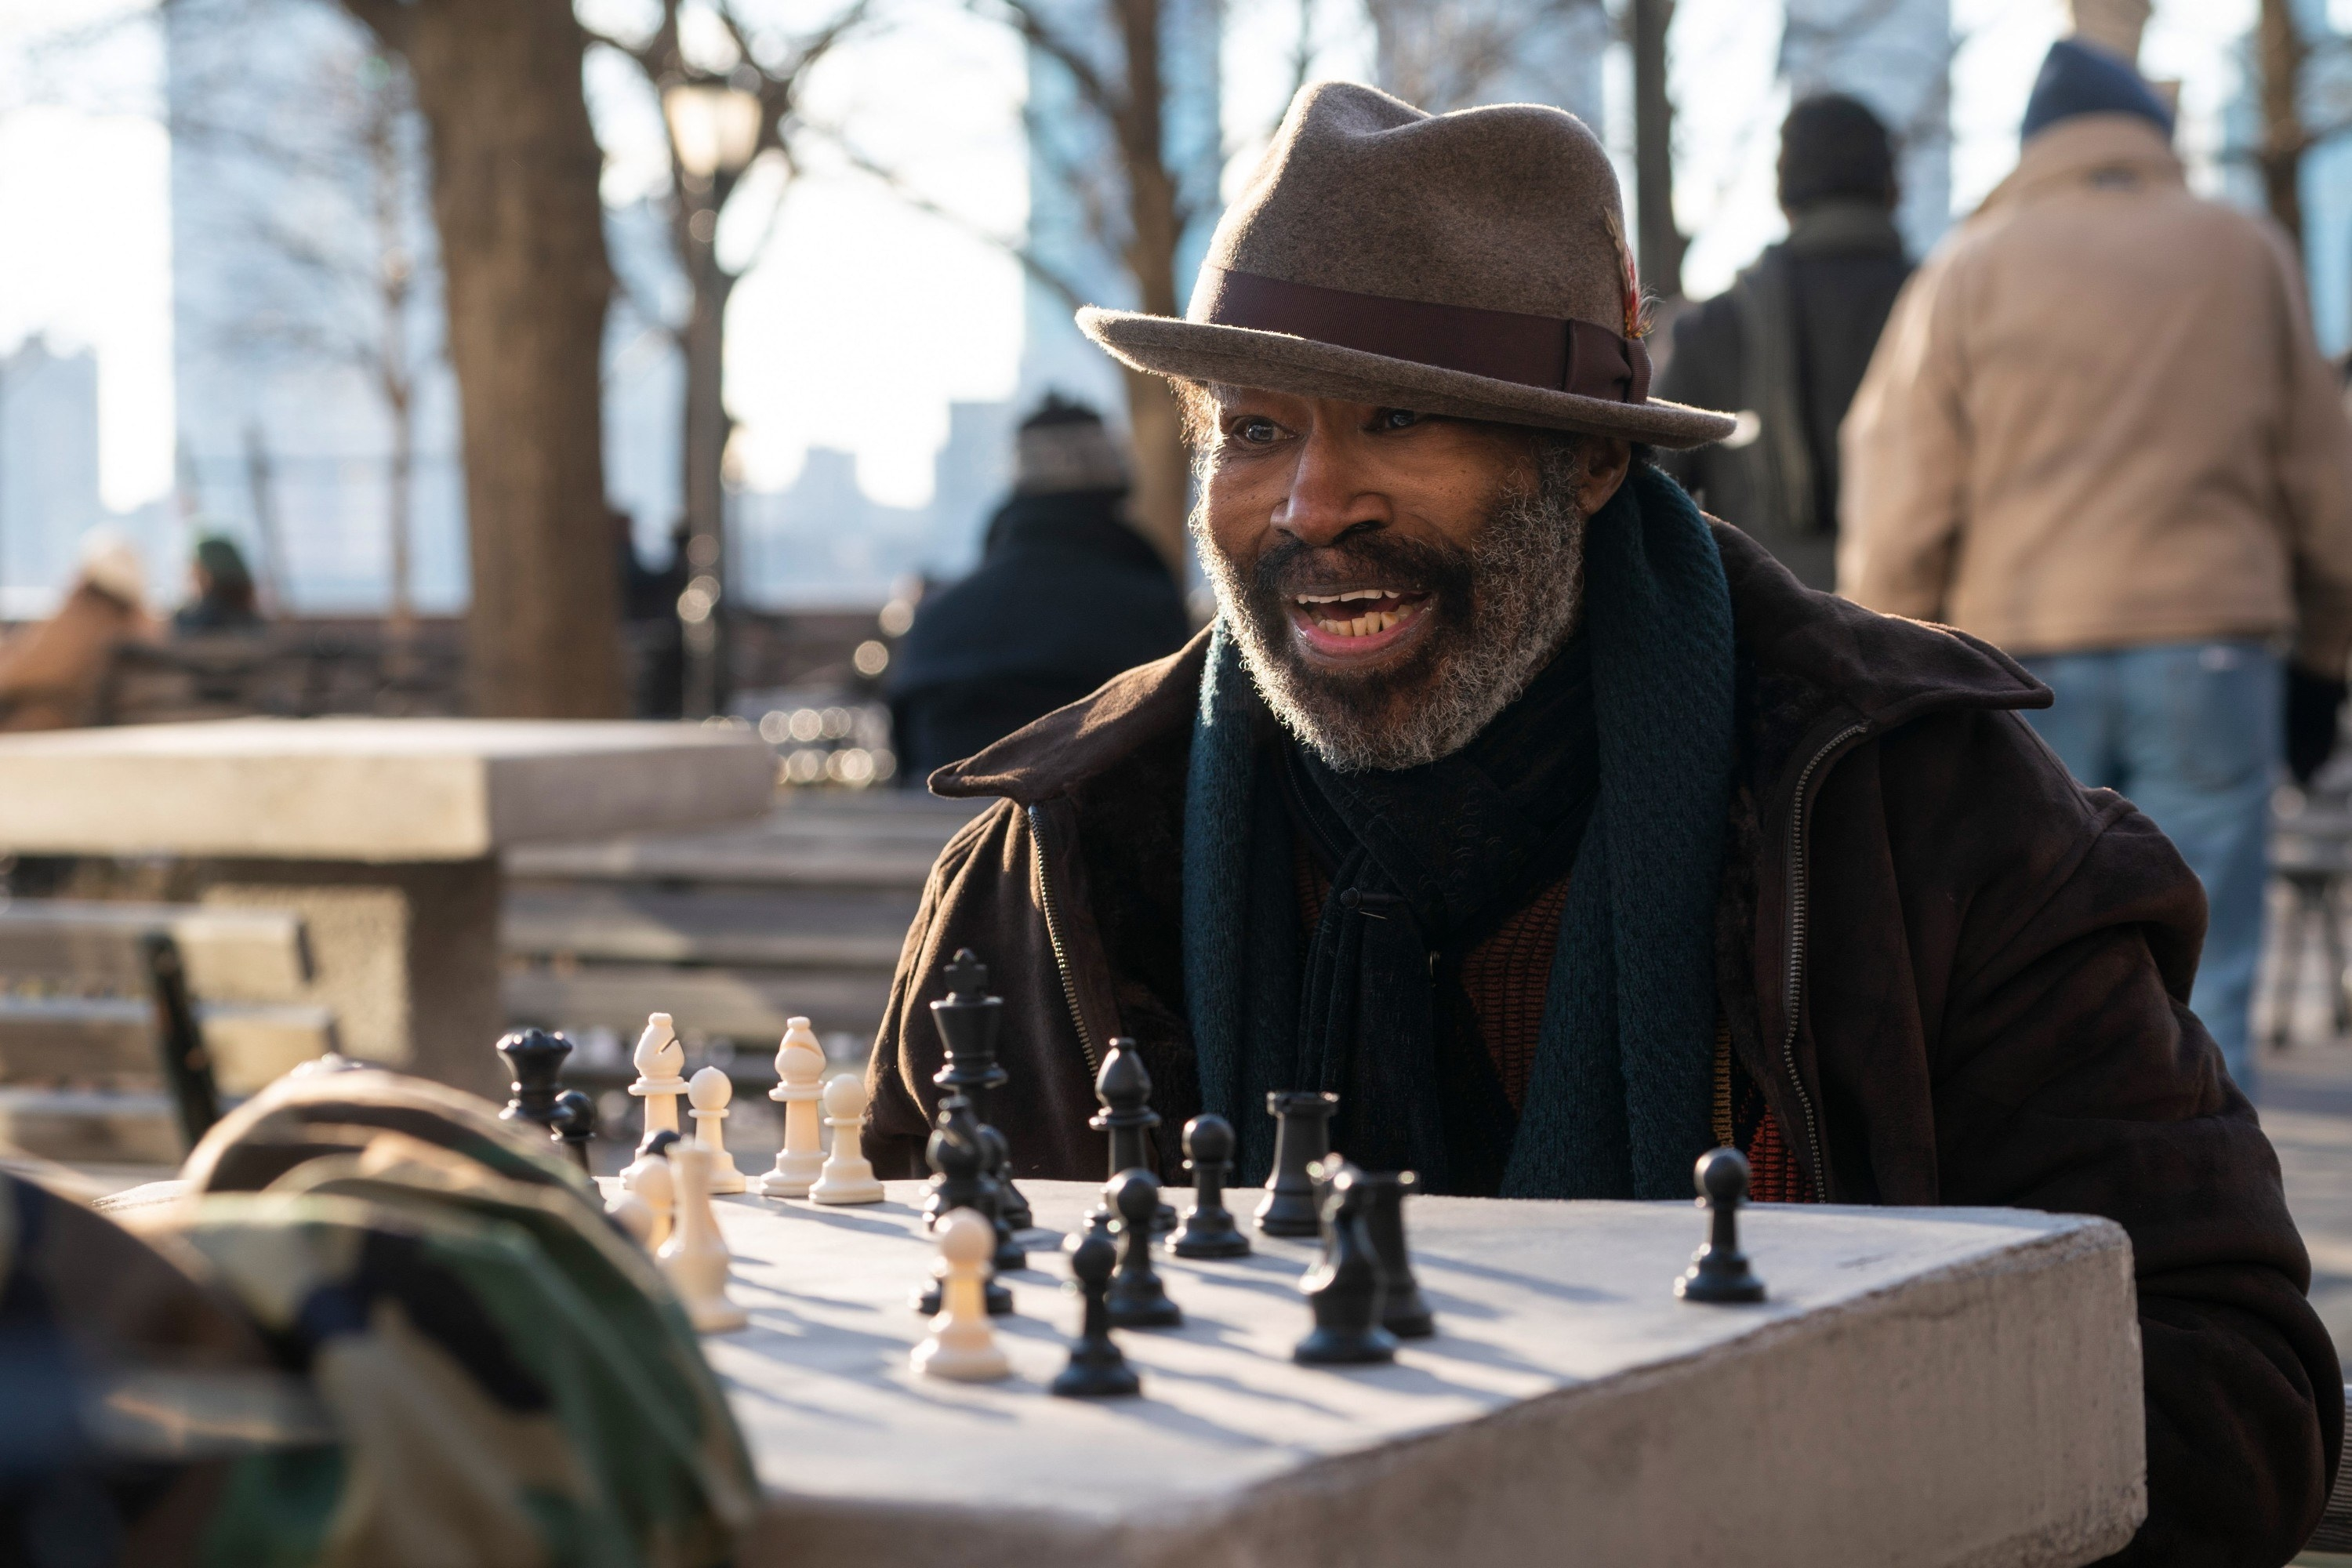 Chisholm in a fedora and jacket playing chess outdoors in NYC